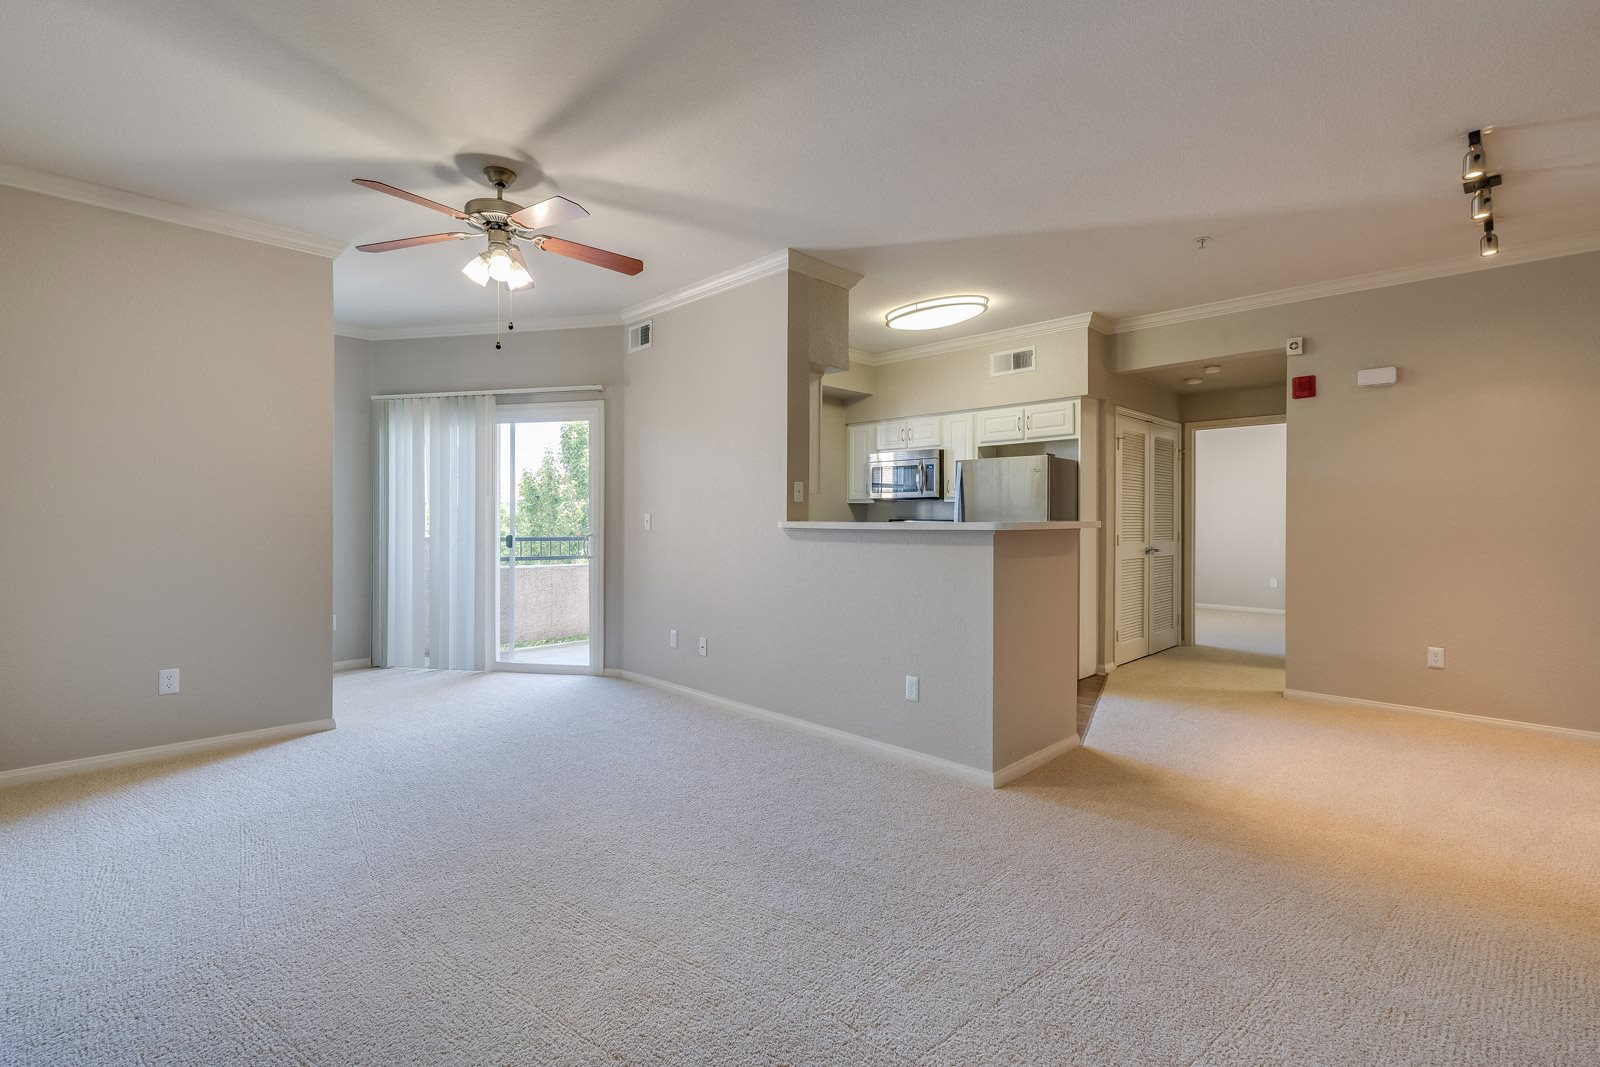 Private Patio Or Balcony at Windsor at Redwood Creek, Rohnert Park, 94928